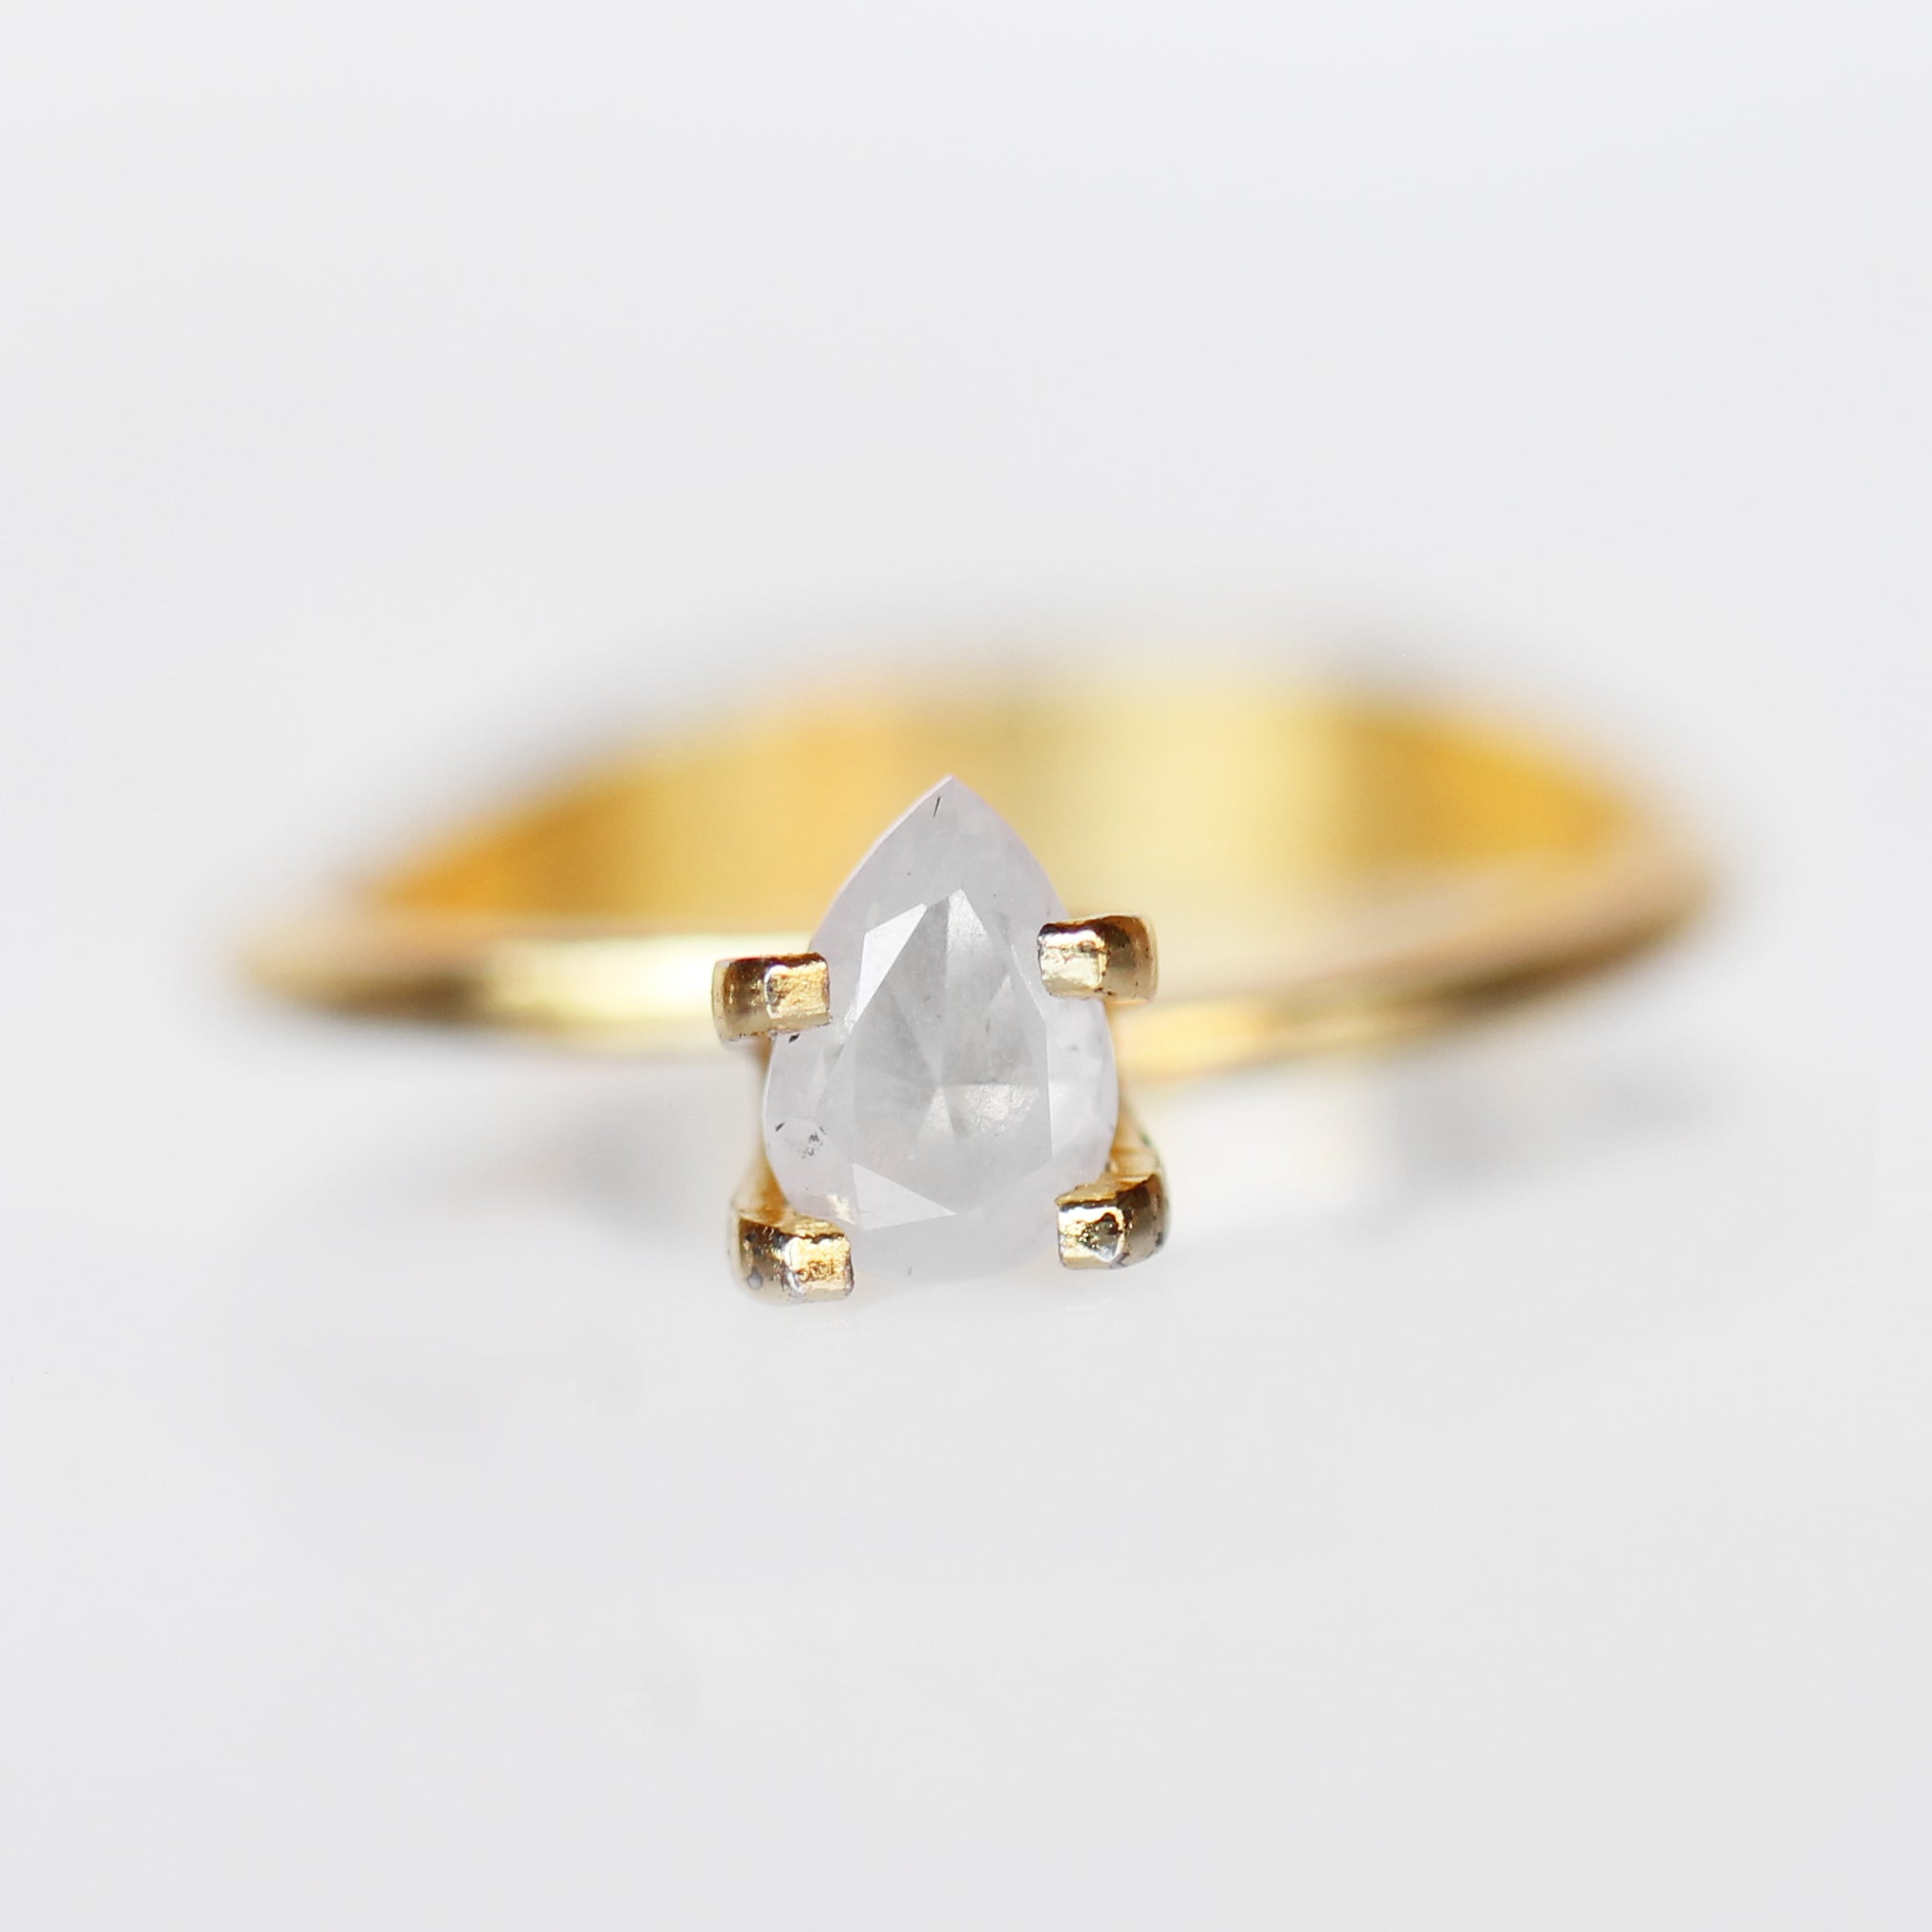 .72 Carat Pear Celestial Diamond-Inventory Code PBWC72 - Salt & Pepper Celestial Diamond Engagement Rings and Wedding Bands  by Midwinter Co.